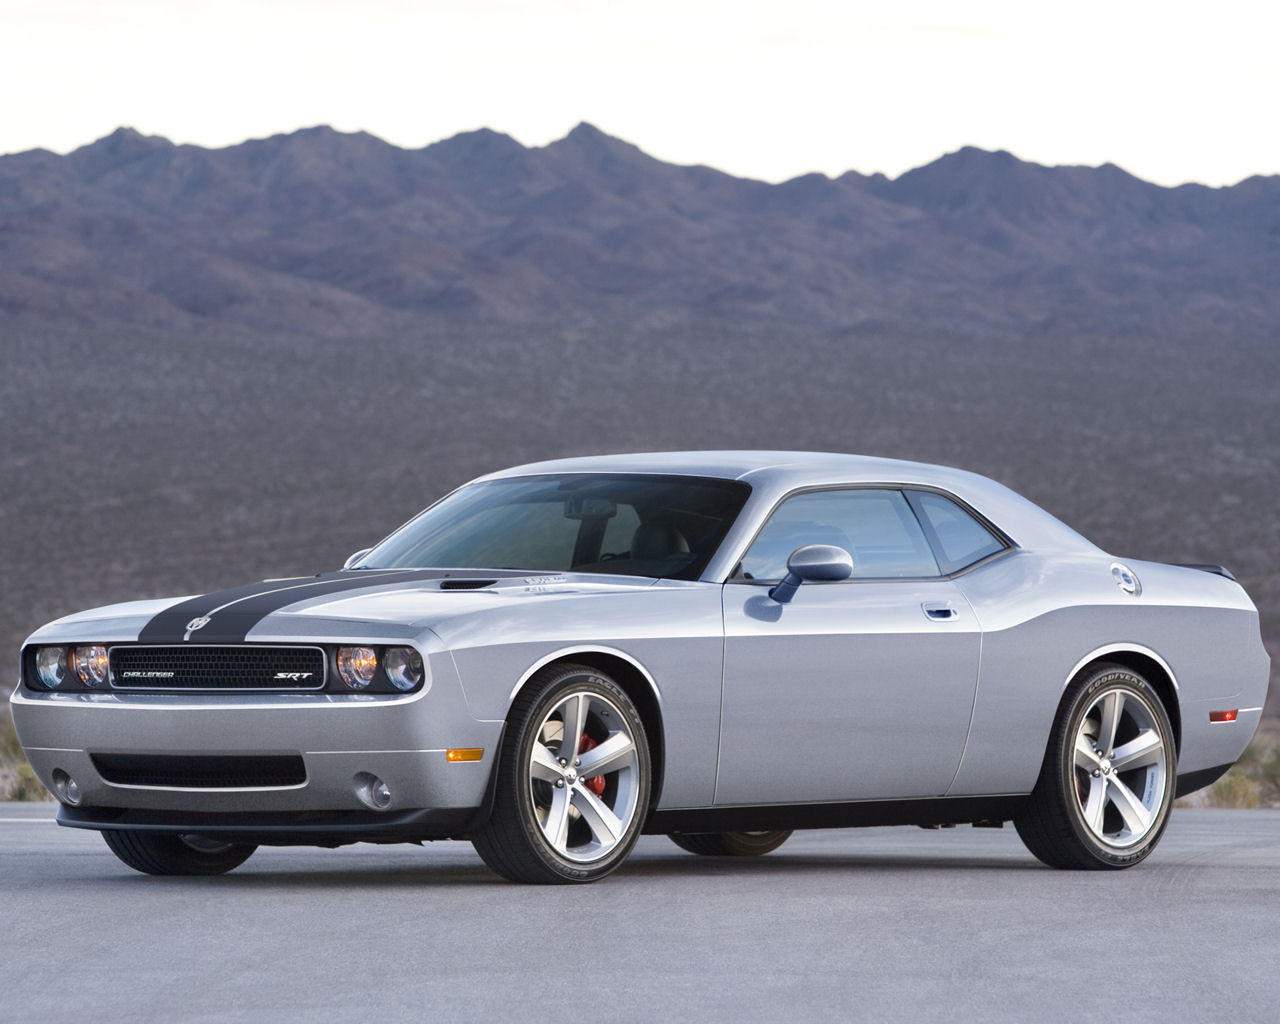 Please right click on the Dodge Challenger wallpaper below and choose 1280x1024